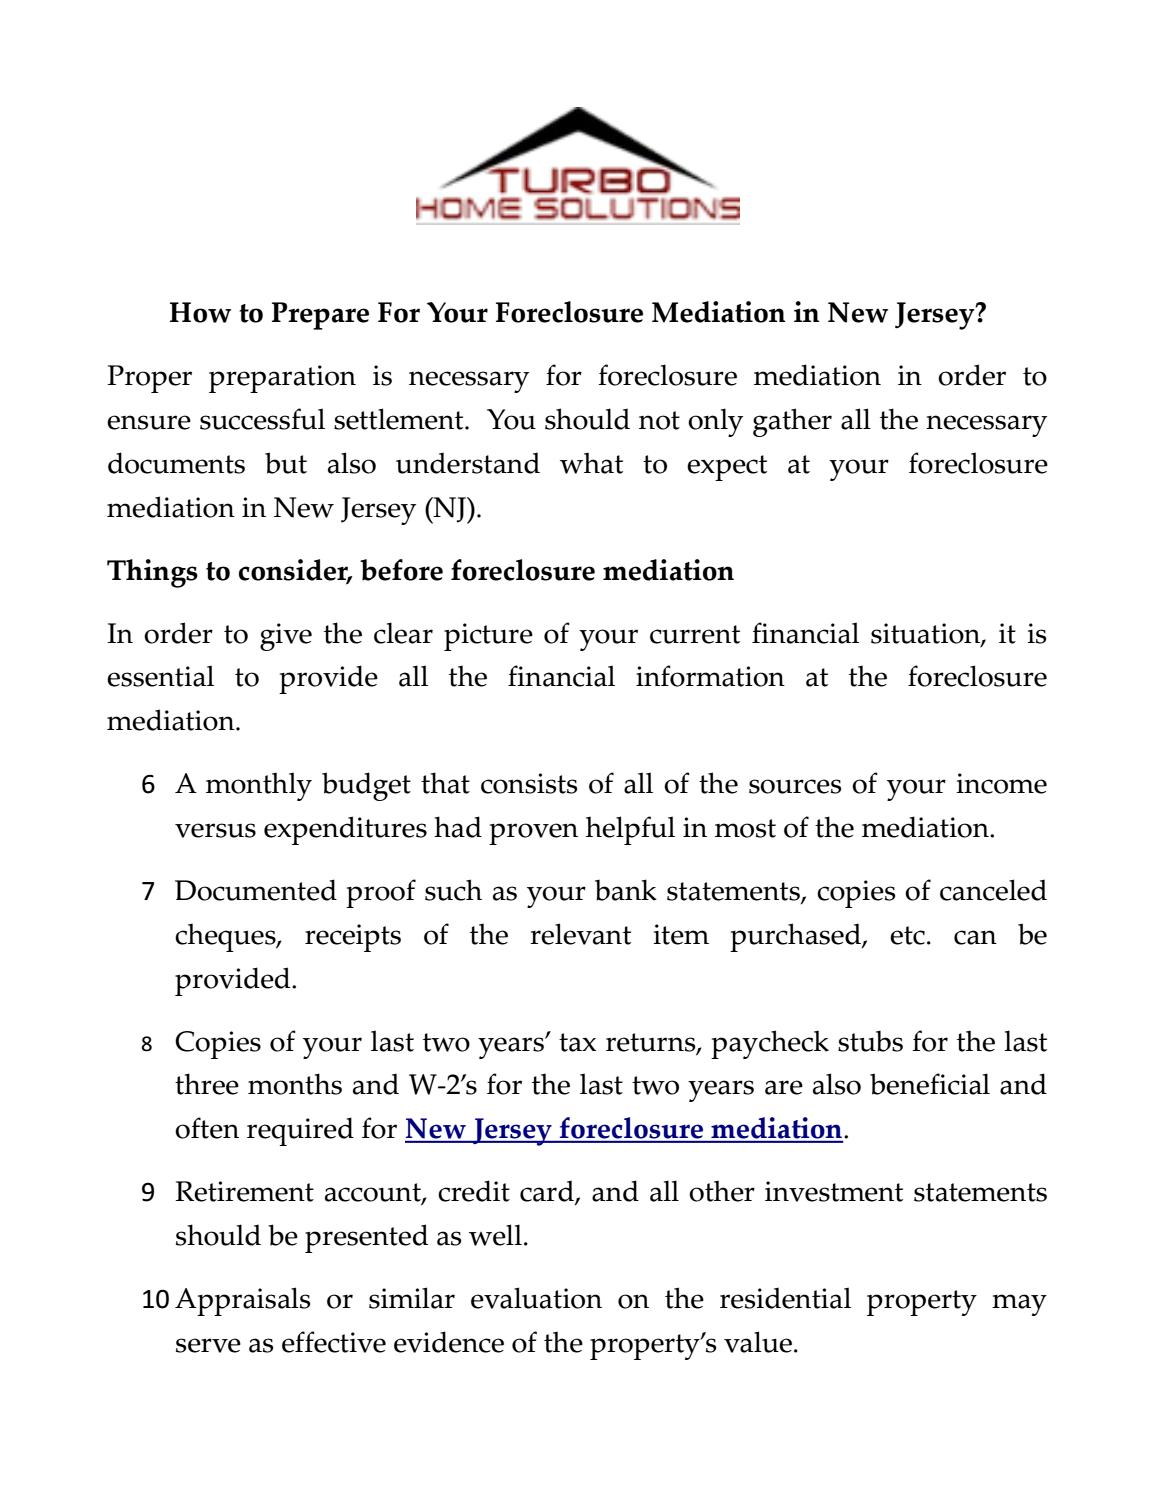 How to Prepare For Your Foreclosure Mediation in New Jersey